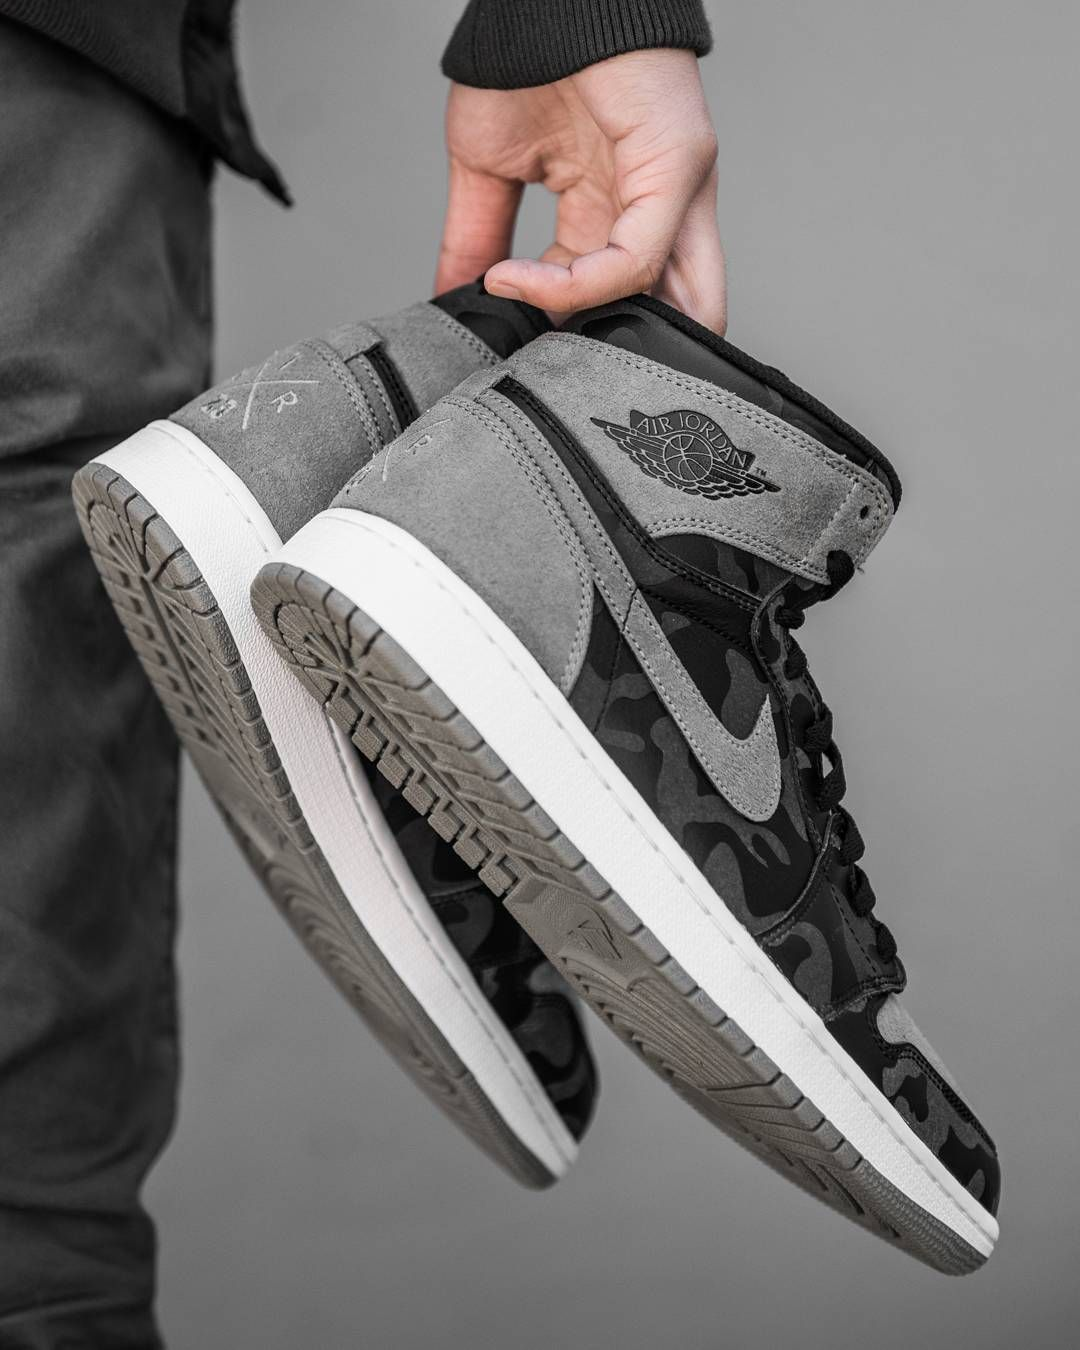 new products 4220f 3148c Air Jordan 1 Retro High Premium